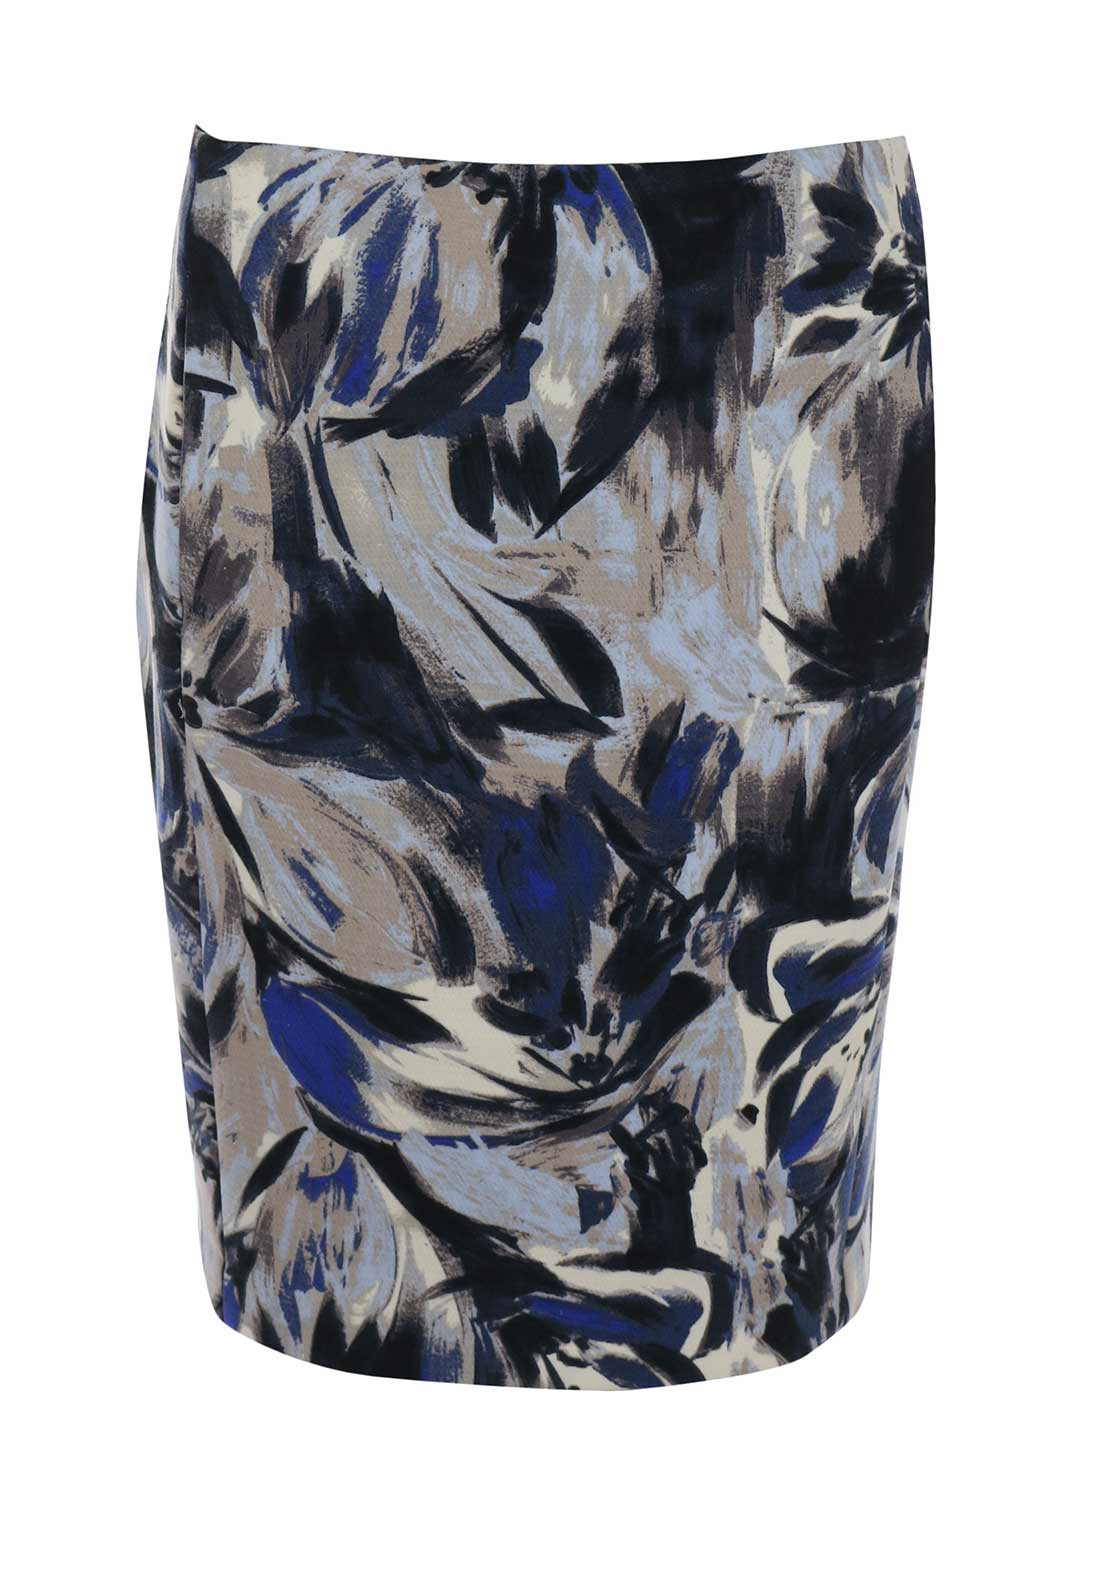 Inwear Floral Print Pencil Skirt, Multi-Coloured